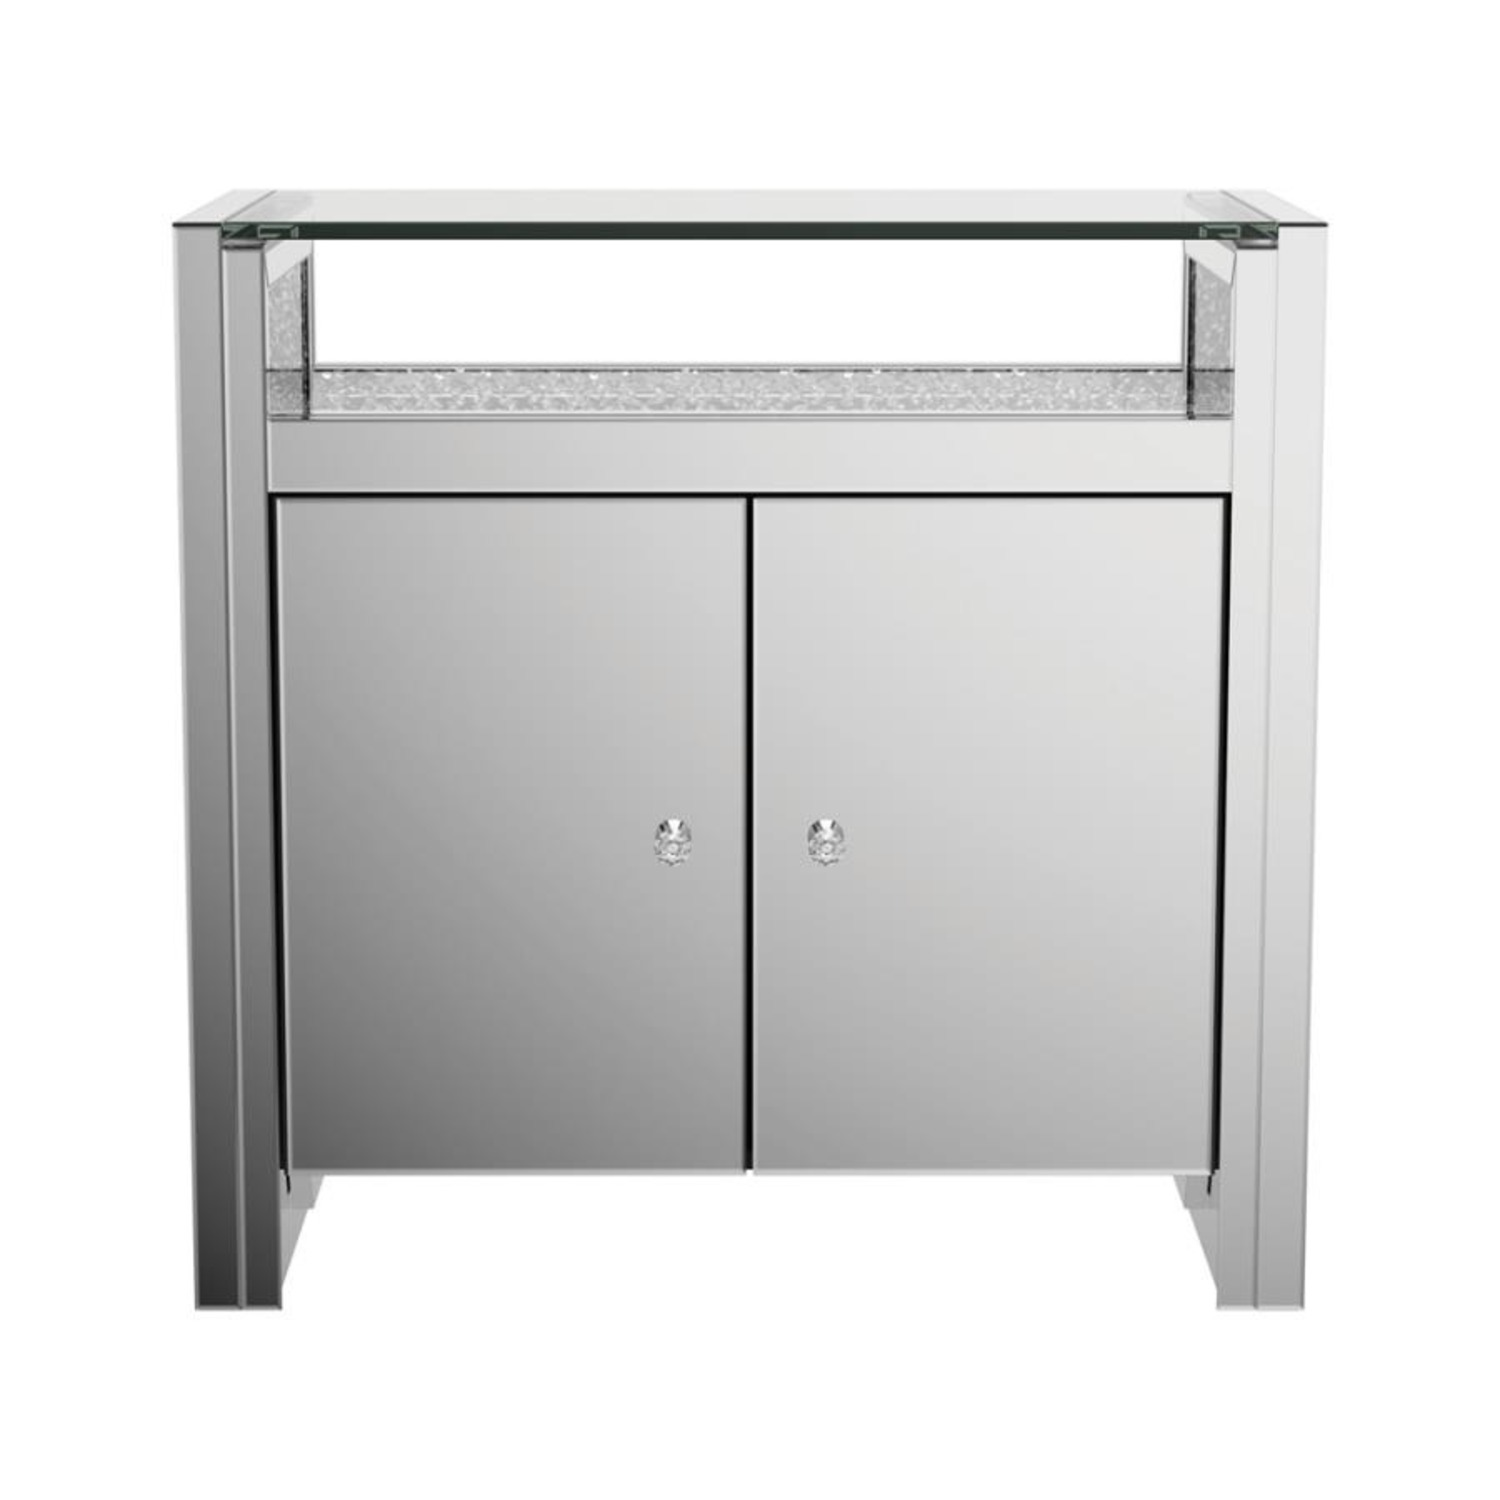 Cabinet In Silver & Clear Mirror Finish - image-1